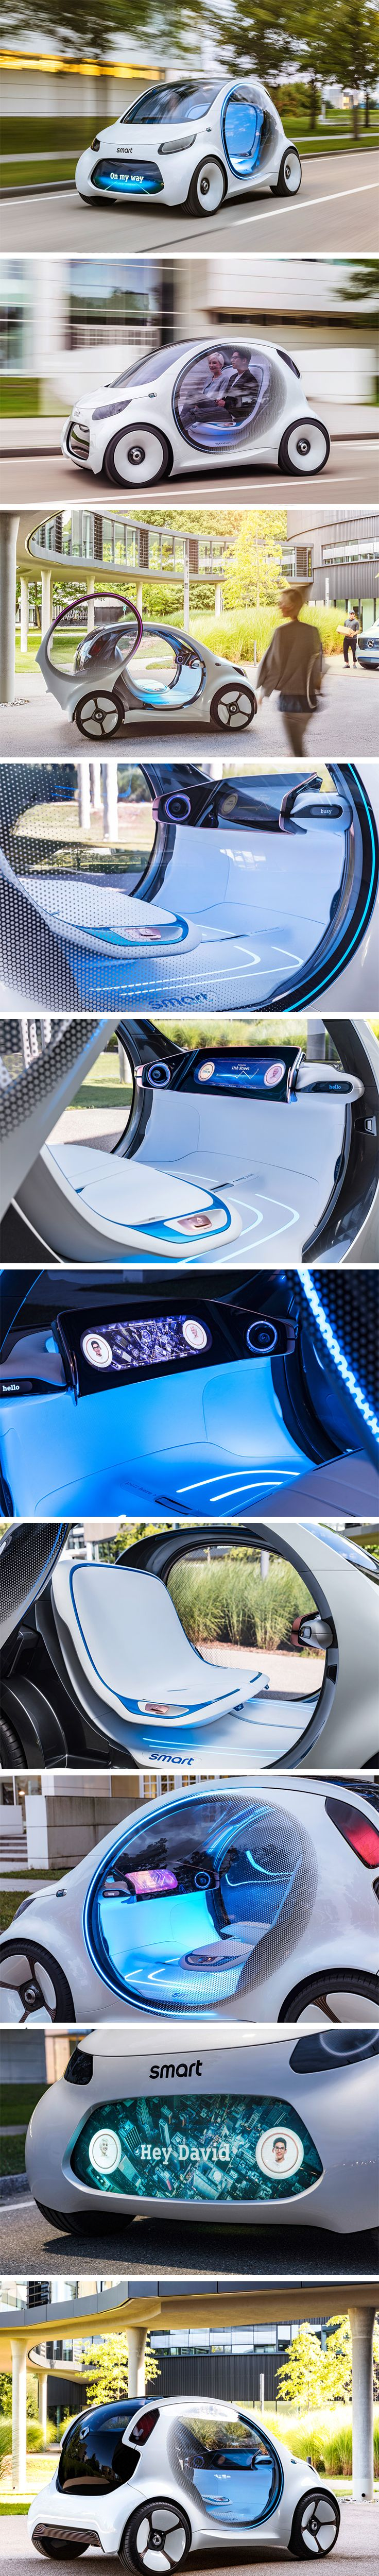 So Mercedes-Benz brings their Smart Vision EQ Concept toCES, and they shut down part of the Las Vegas Strip for it…if you haven't seen it already, then you'll understand why this was completely acceptable. An all-electric, completely autonomous car, built for personalization without actual ownership – the Smart Vision EQ Concept lacks both a steering wheel and pedals.